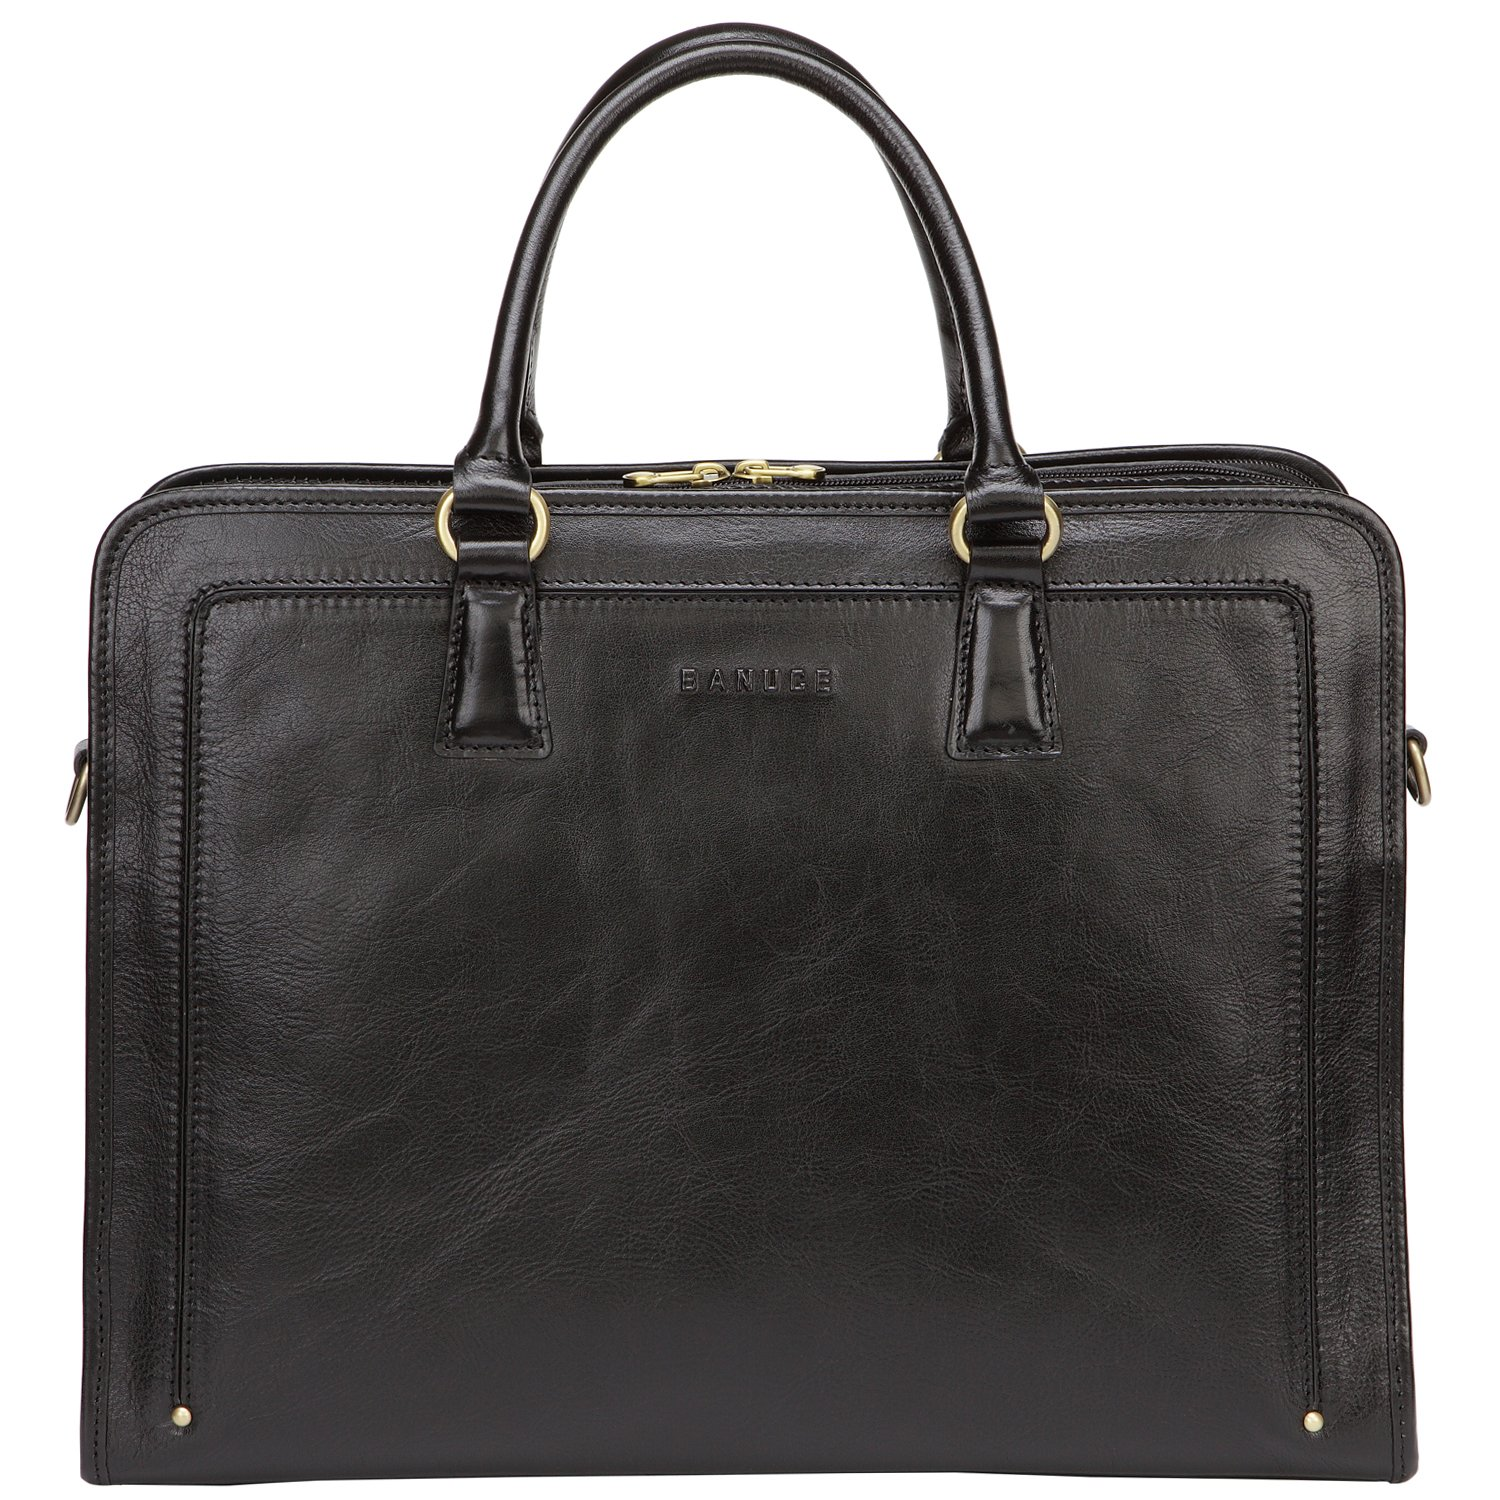 Banuce Full Grains Leather Briefcase Messenger Satchel Bag 14 Laptop Case by Banuce